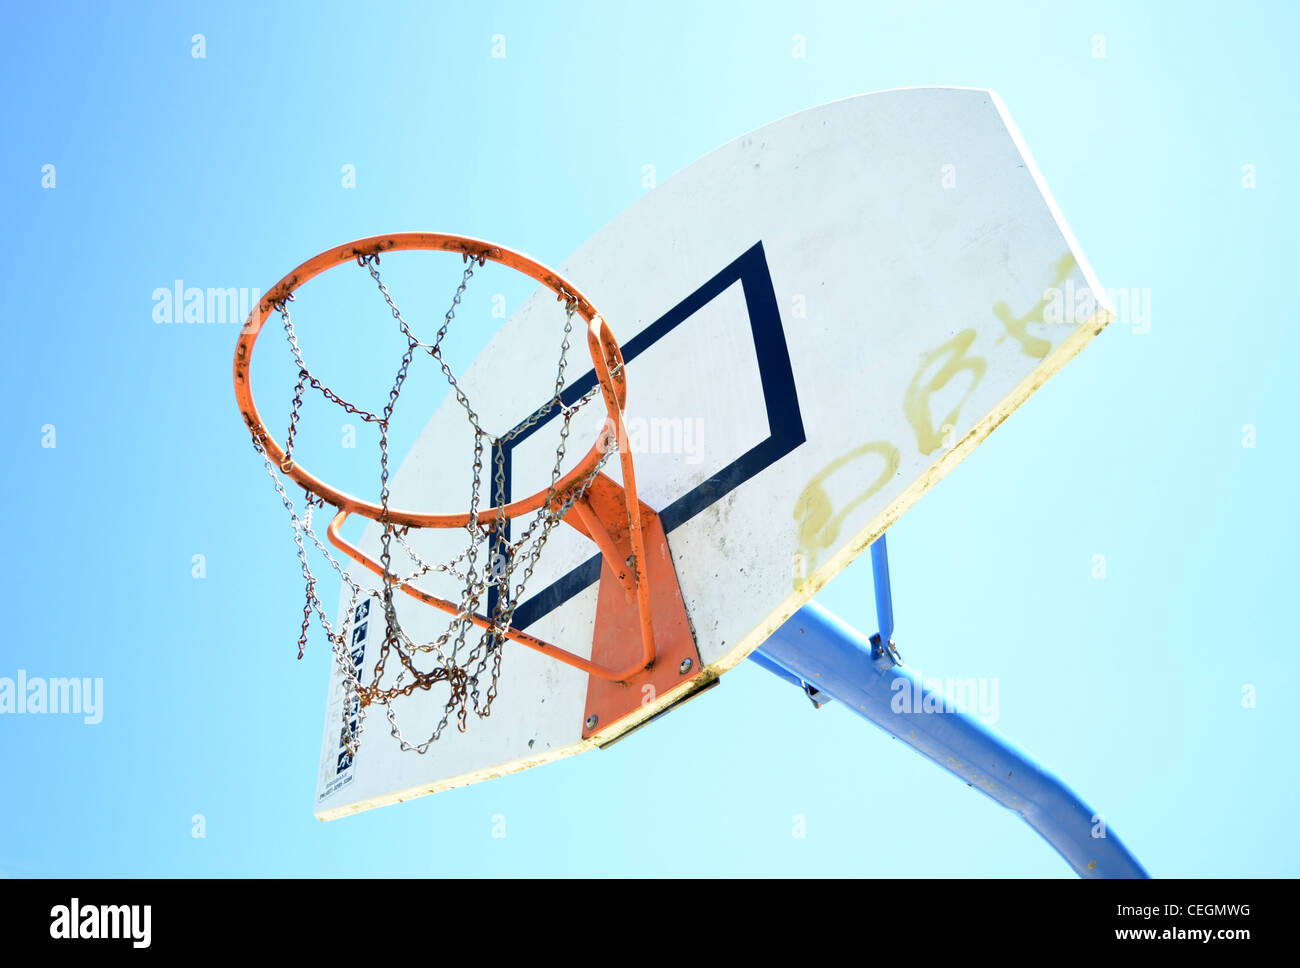 Outdoor Basketball Hoop With Backboard Stock Photo 43393548 Alamy Diagram